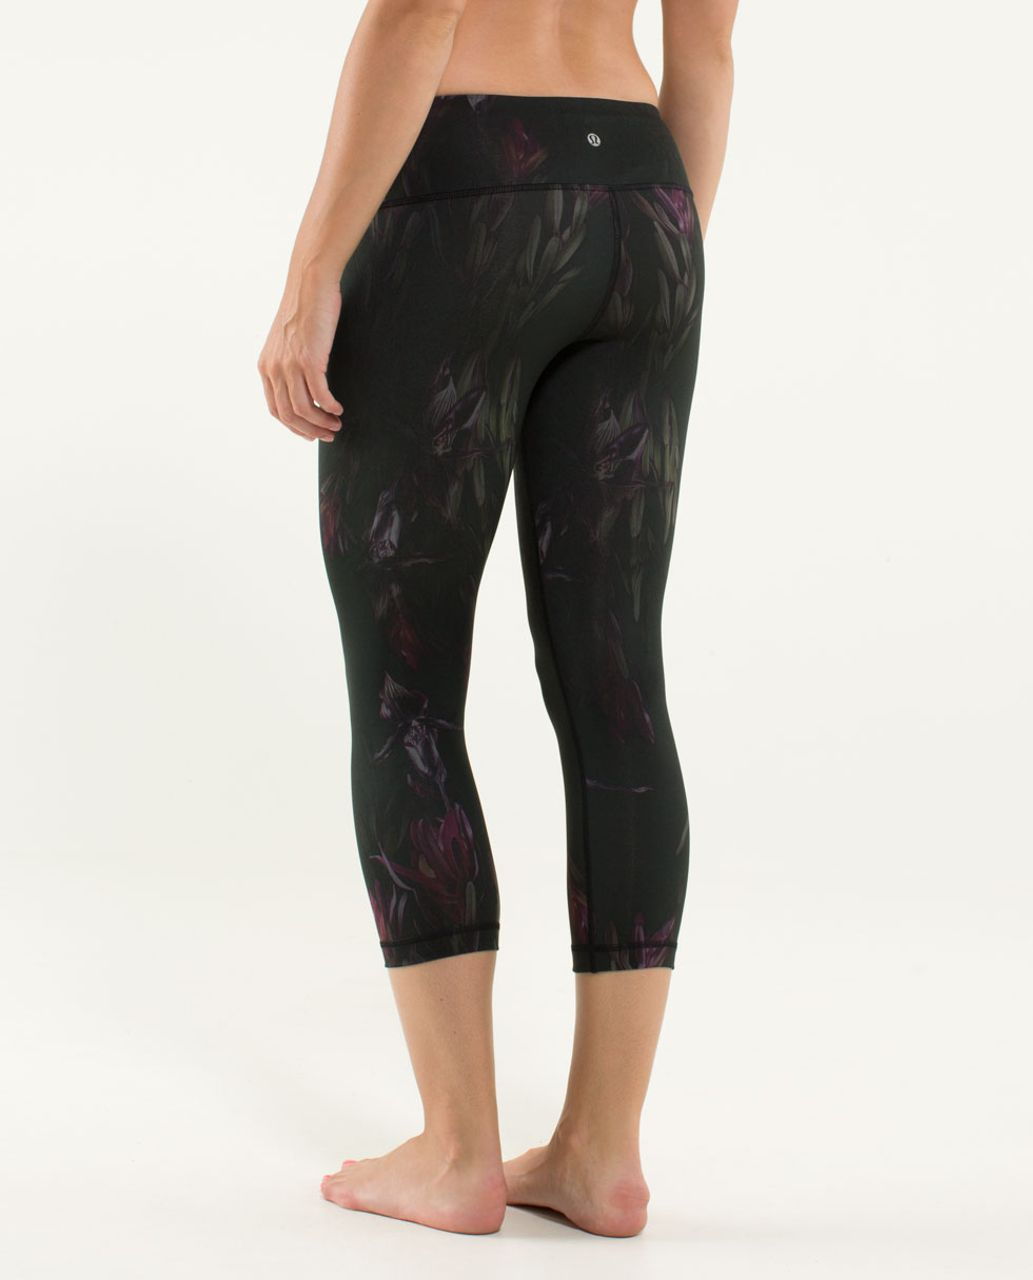 Lululemon Wunder Under Crop - Midnight Iris Multi / Black